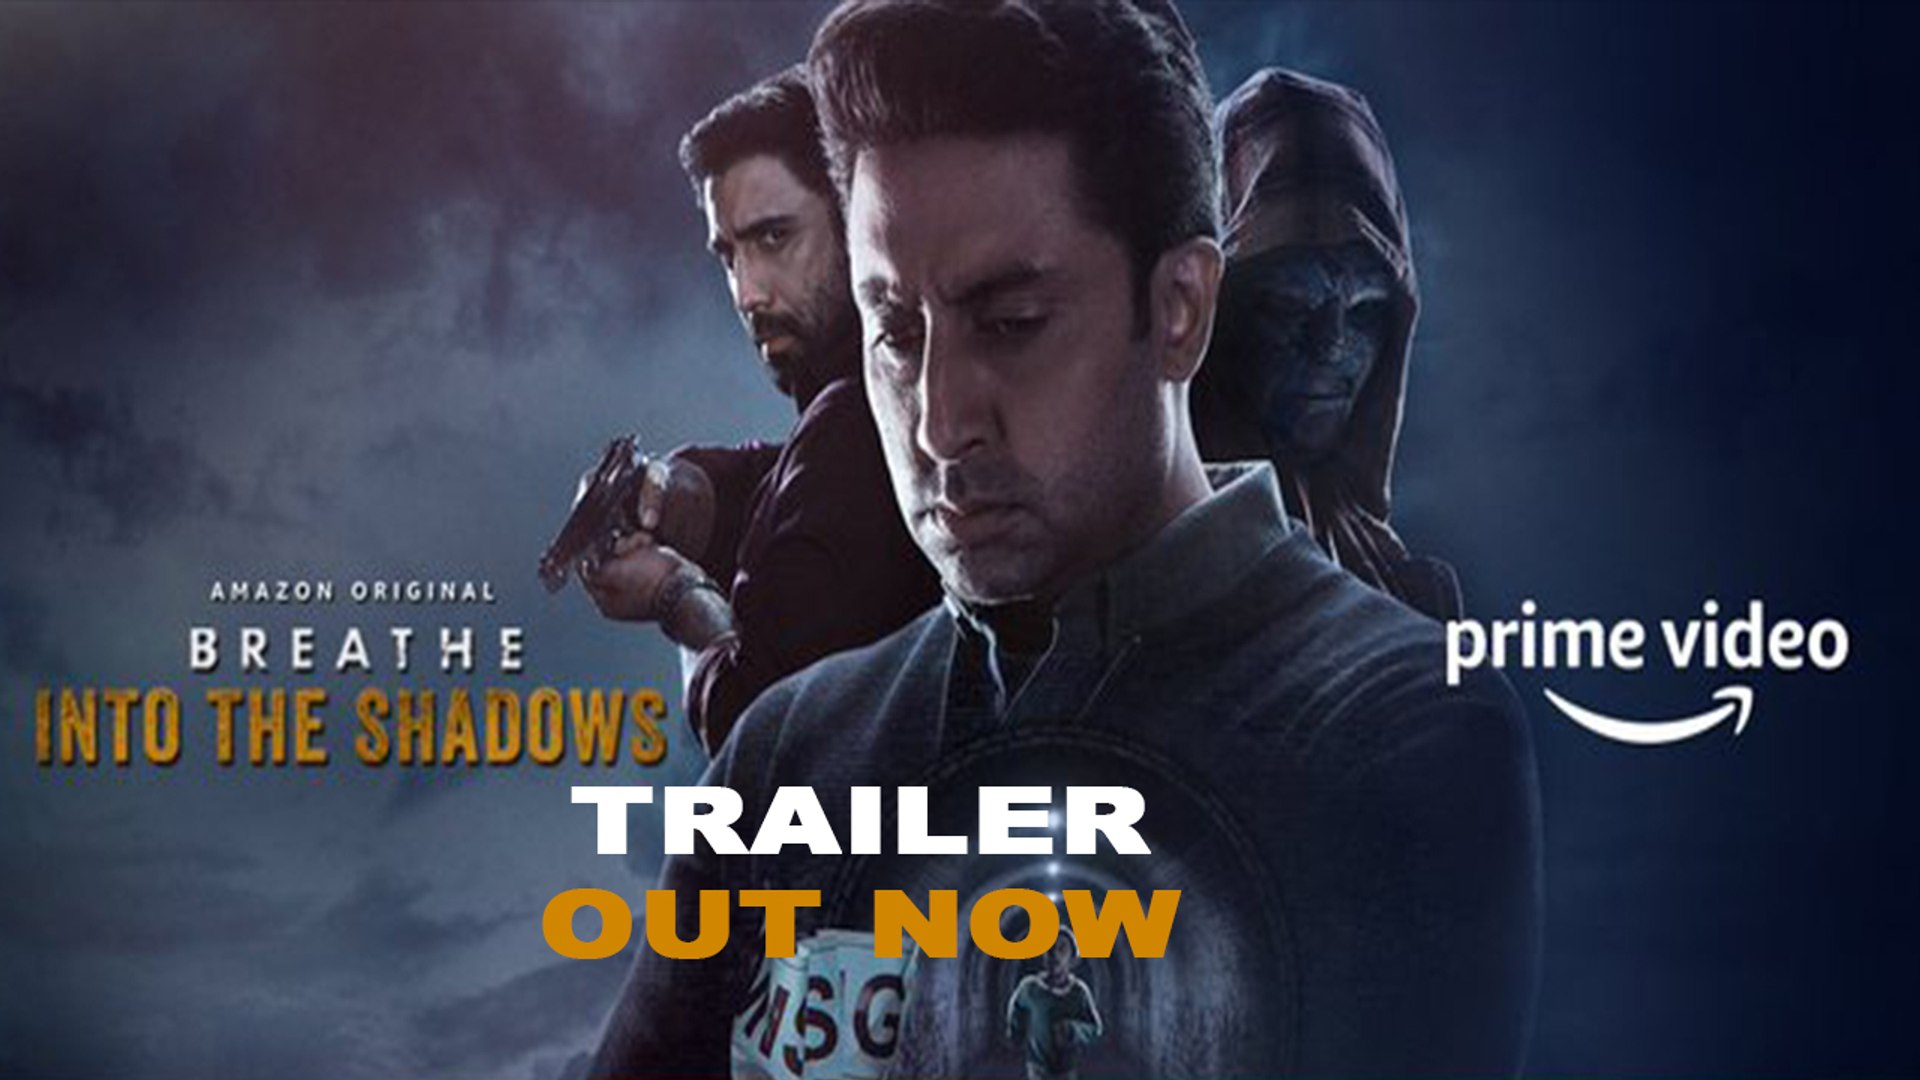 Abhishek Bachchan starrer 'Breathe Into The Shadows' trailer out now